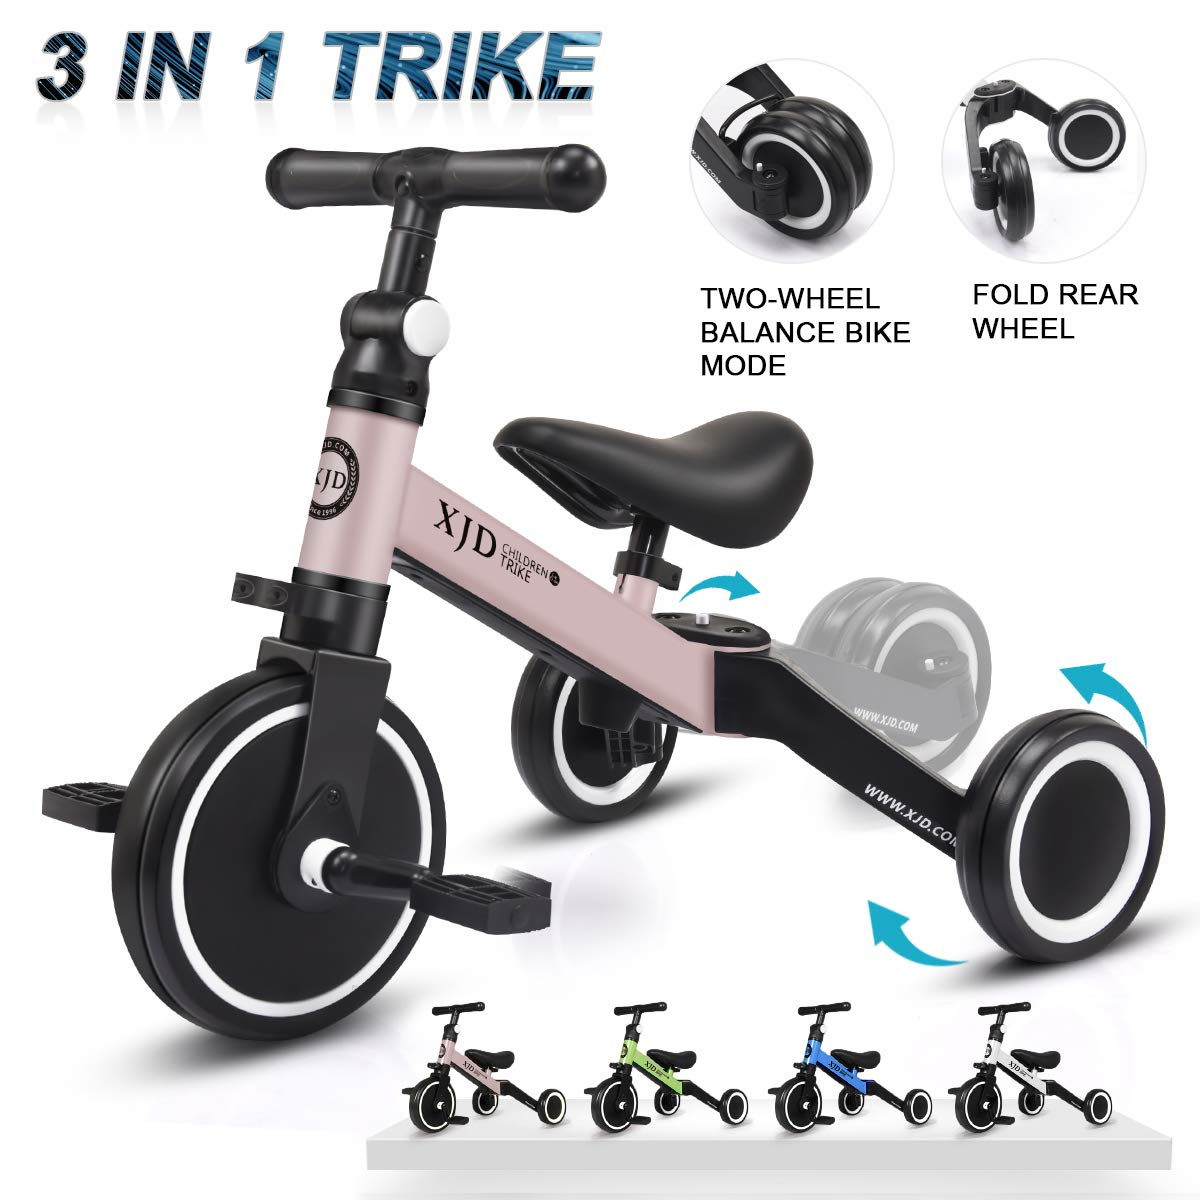 XJD 3 in 1 Kids Tricycles for 1-3 Years Old Kids Trike 3 Wheel Toddler Bike Boys Girls Trikes for Toddler Tricycles Baby Bike Trike Upgrade 2.0